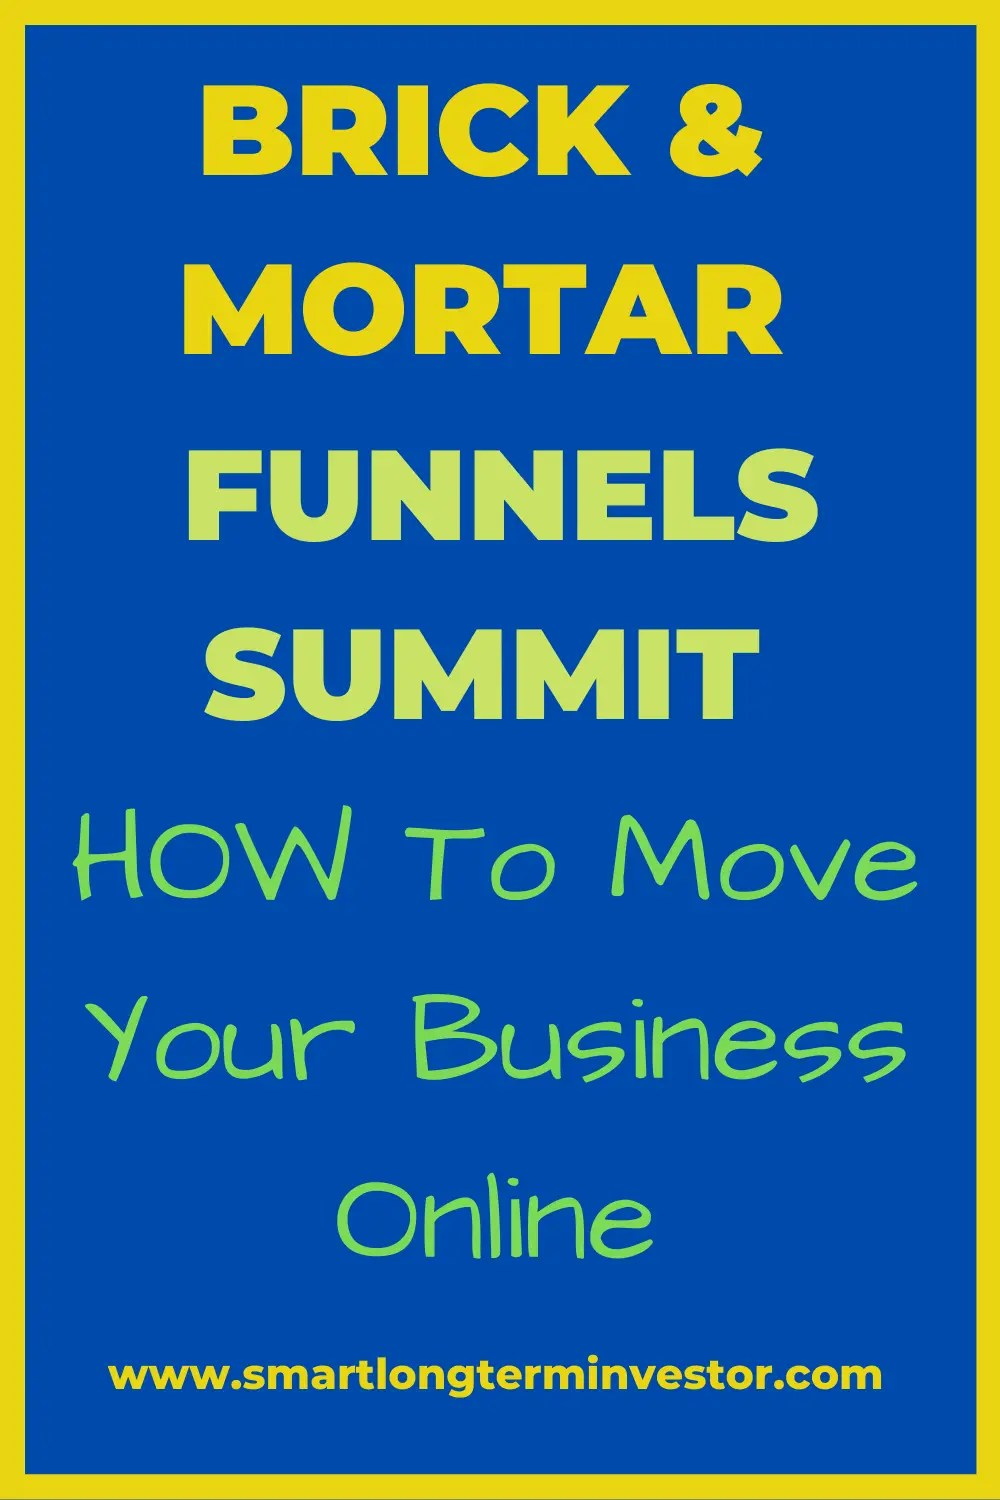 Brick and Mortar Funnels Summit Review: Move Your Business Online With Sales Funnels